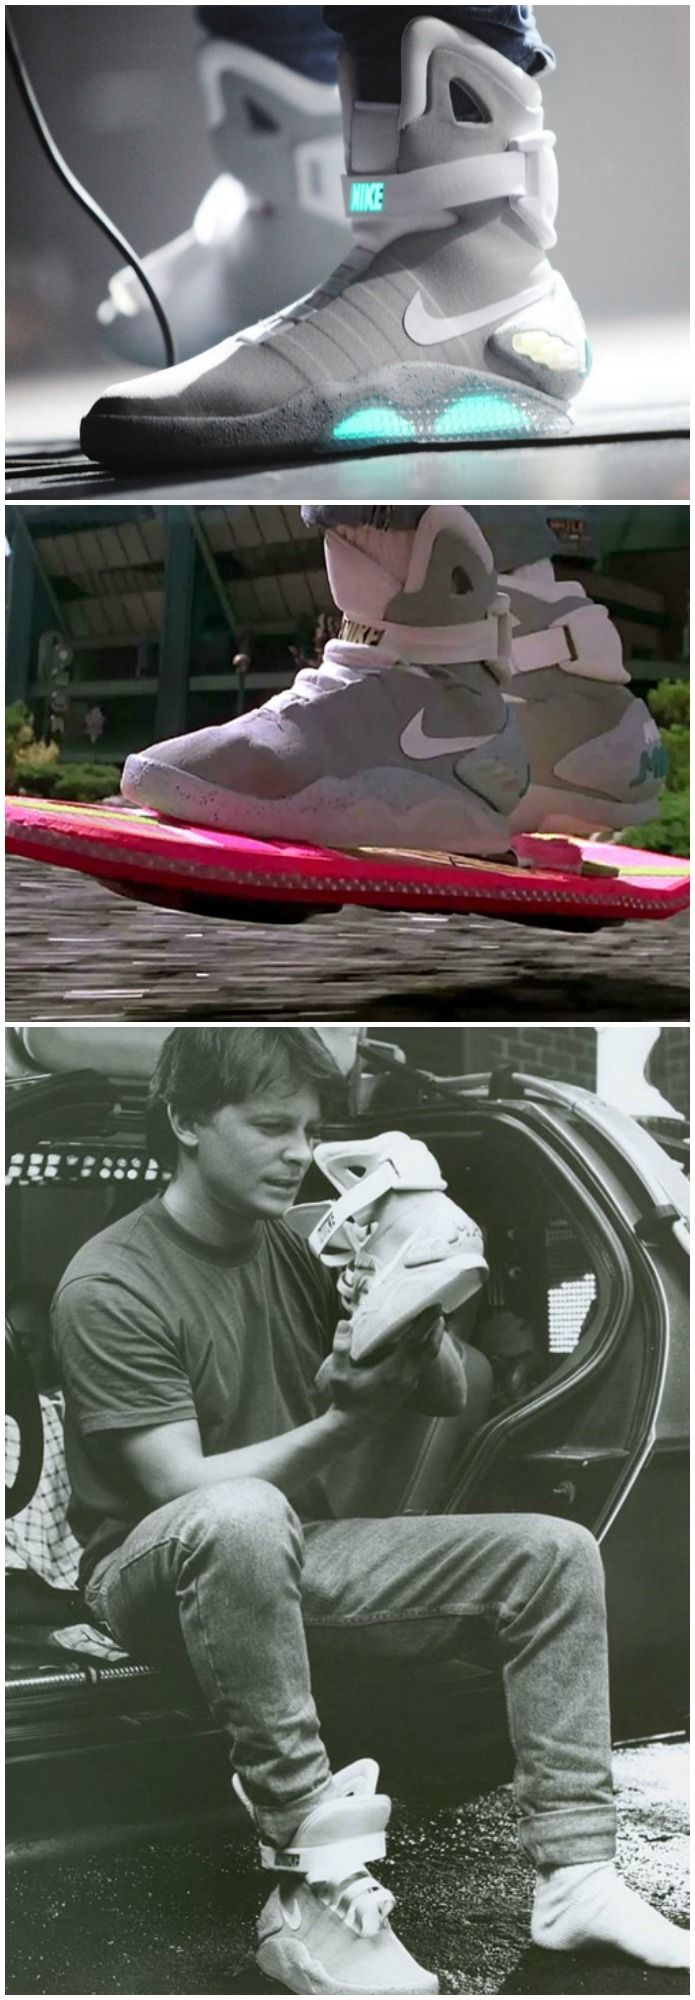 Great Scott! The Nike Air Mag Self Lacing Sneakers are real and you can actually buy yourself a pair. If you have $89,000 to spare that is.